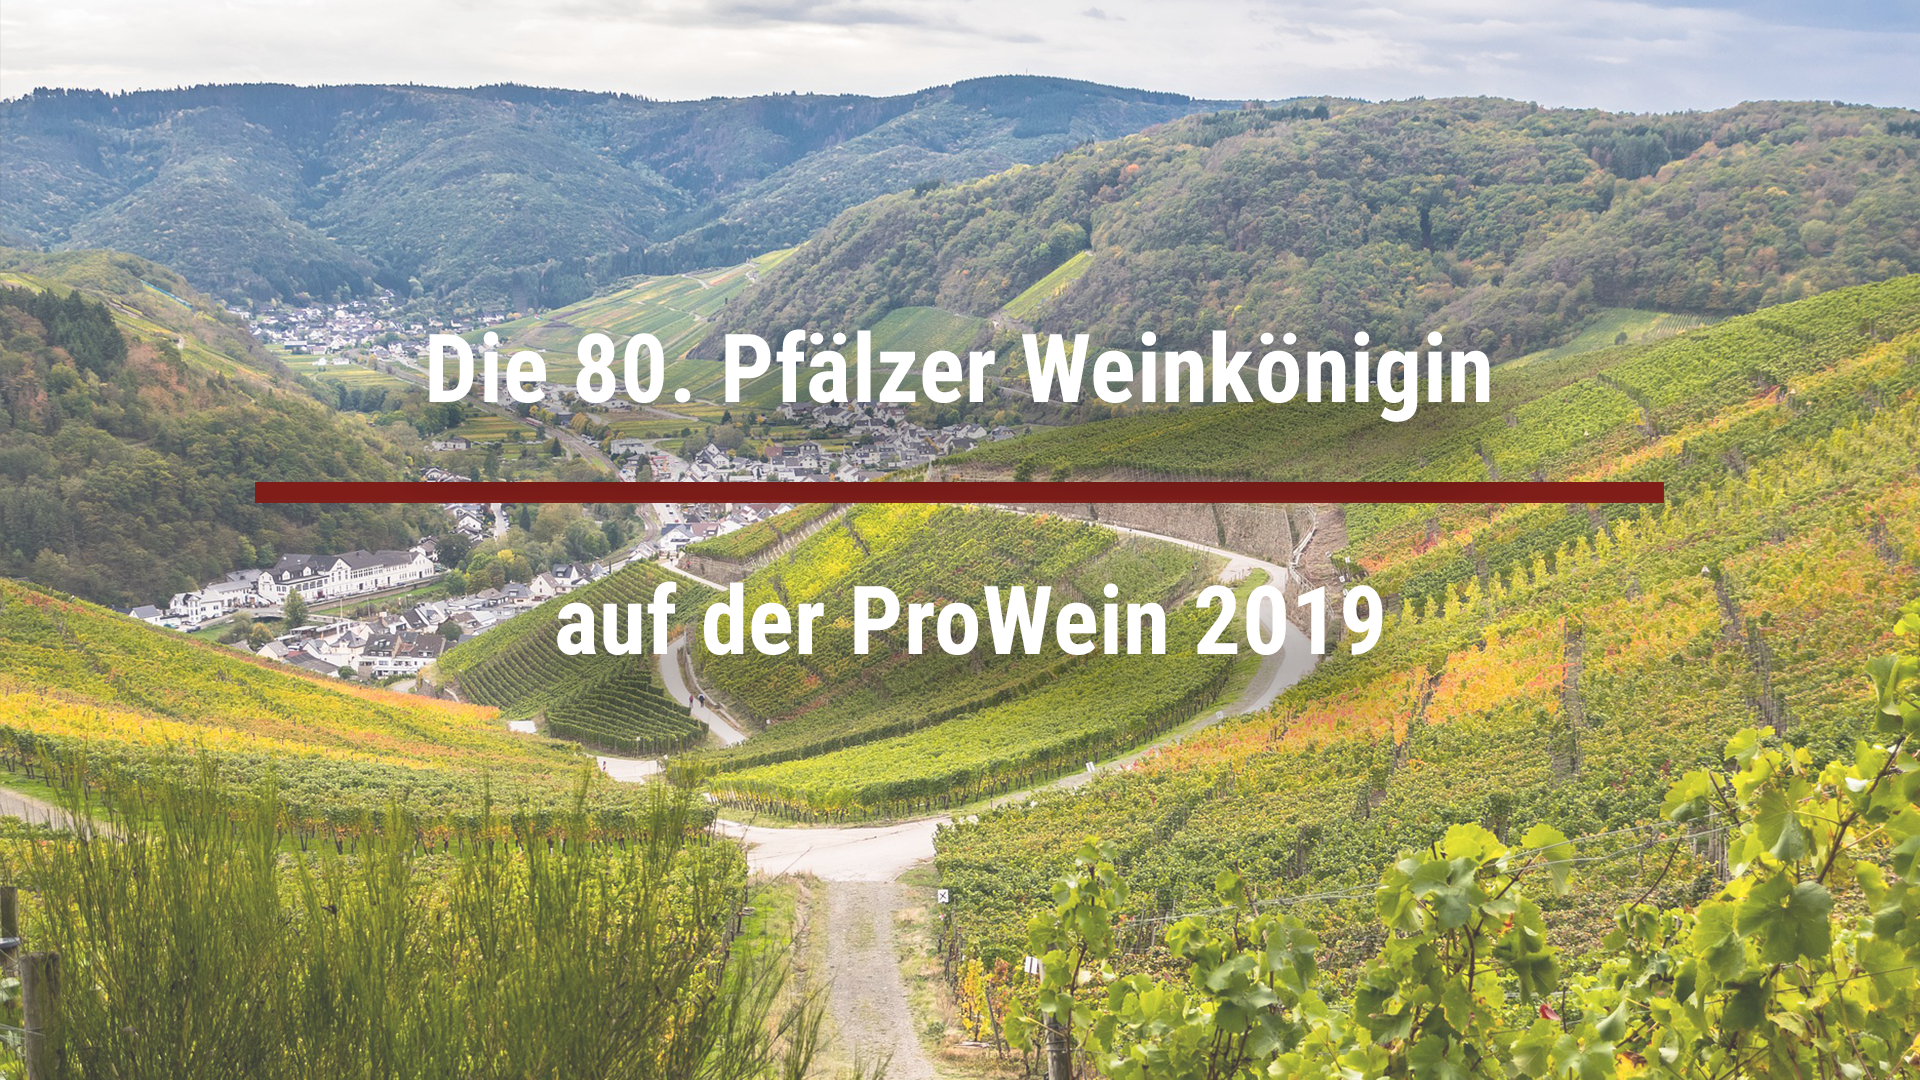 The 80th Palatinate Wine Queen at ProWein 2019